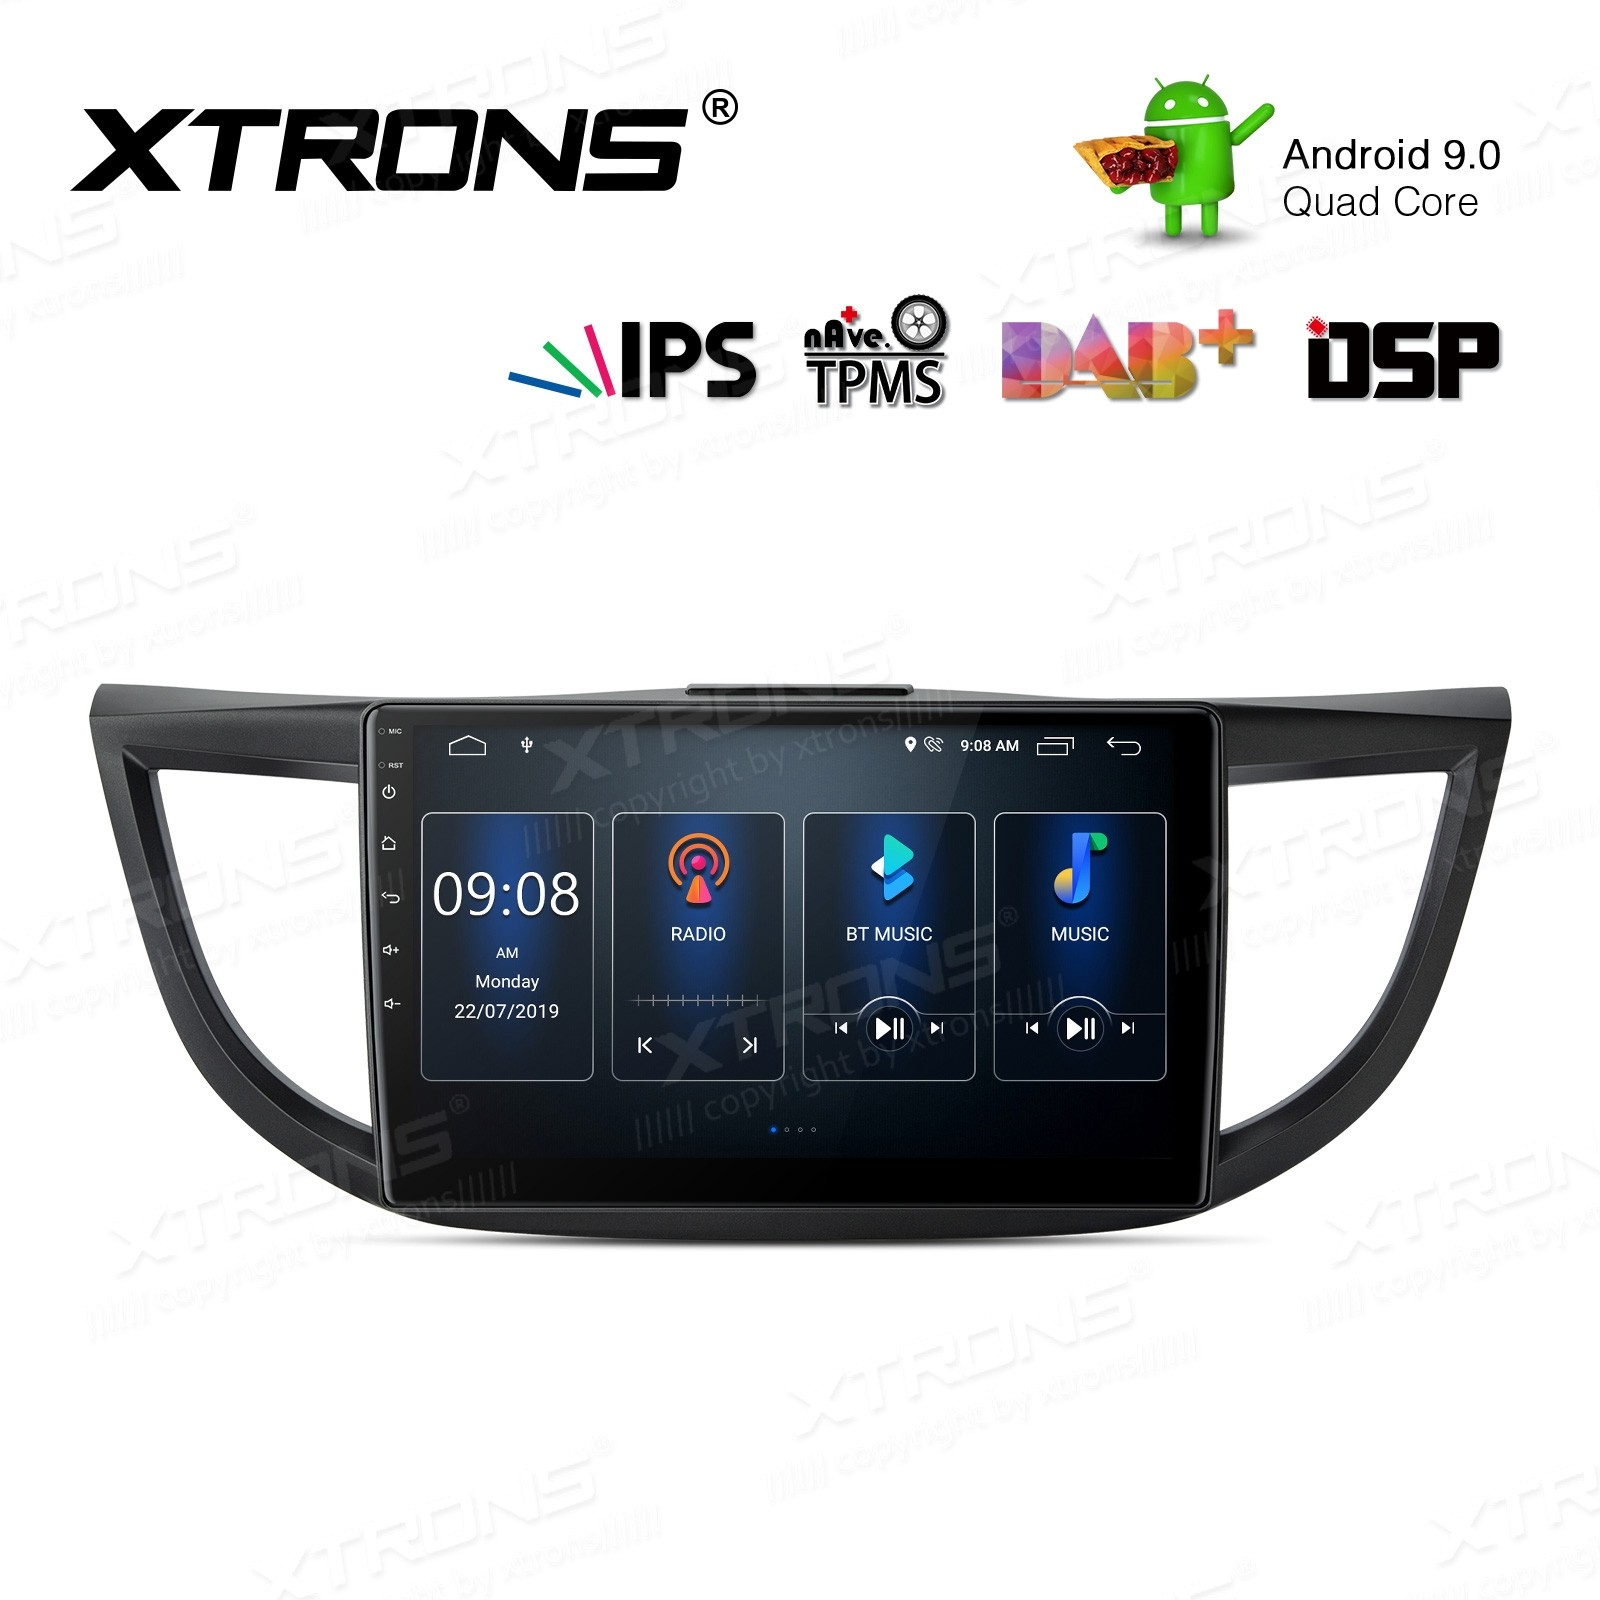 10.1 inch Android 9.0 IPS Screen with Built-in DSP Navigation Multimedia Player Fit for Honda